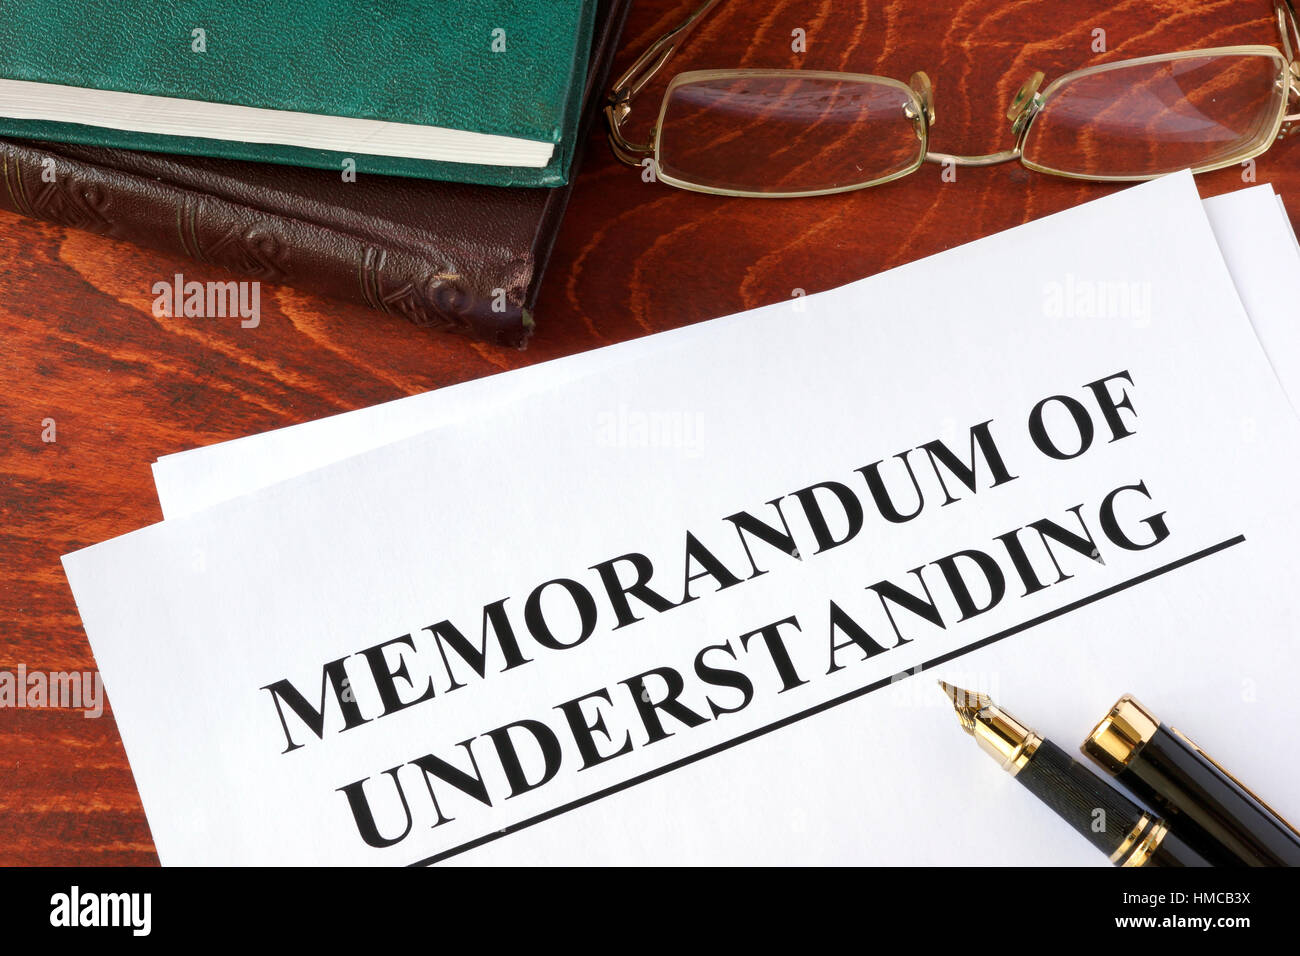 Memorandum of understanding MOU on a table and a pen. - Stock Image